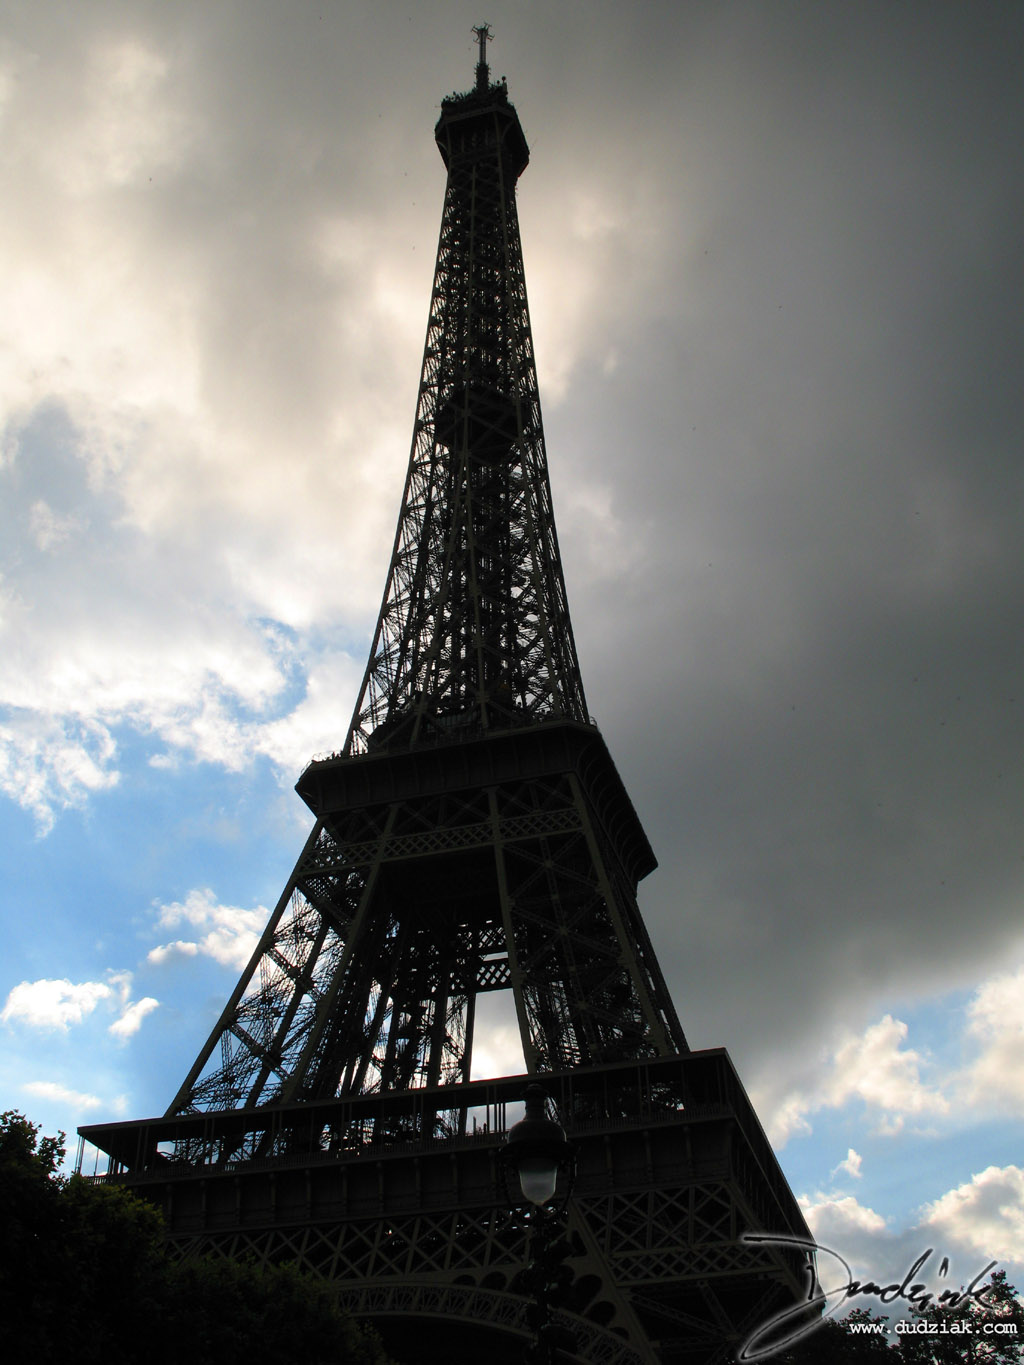 Overcast,  Clouds,  Cloudy,  Paris France,  Eiffel Tower